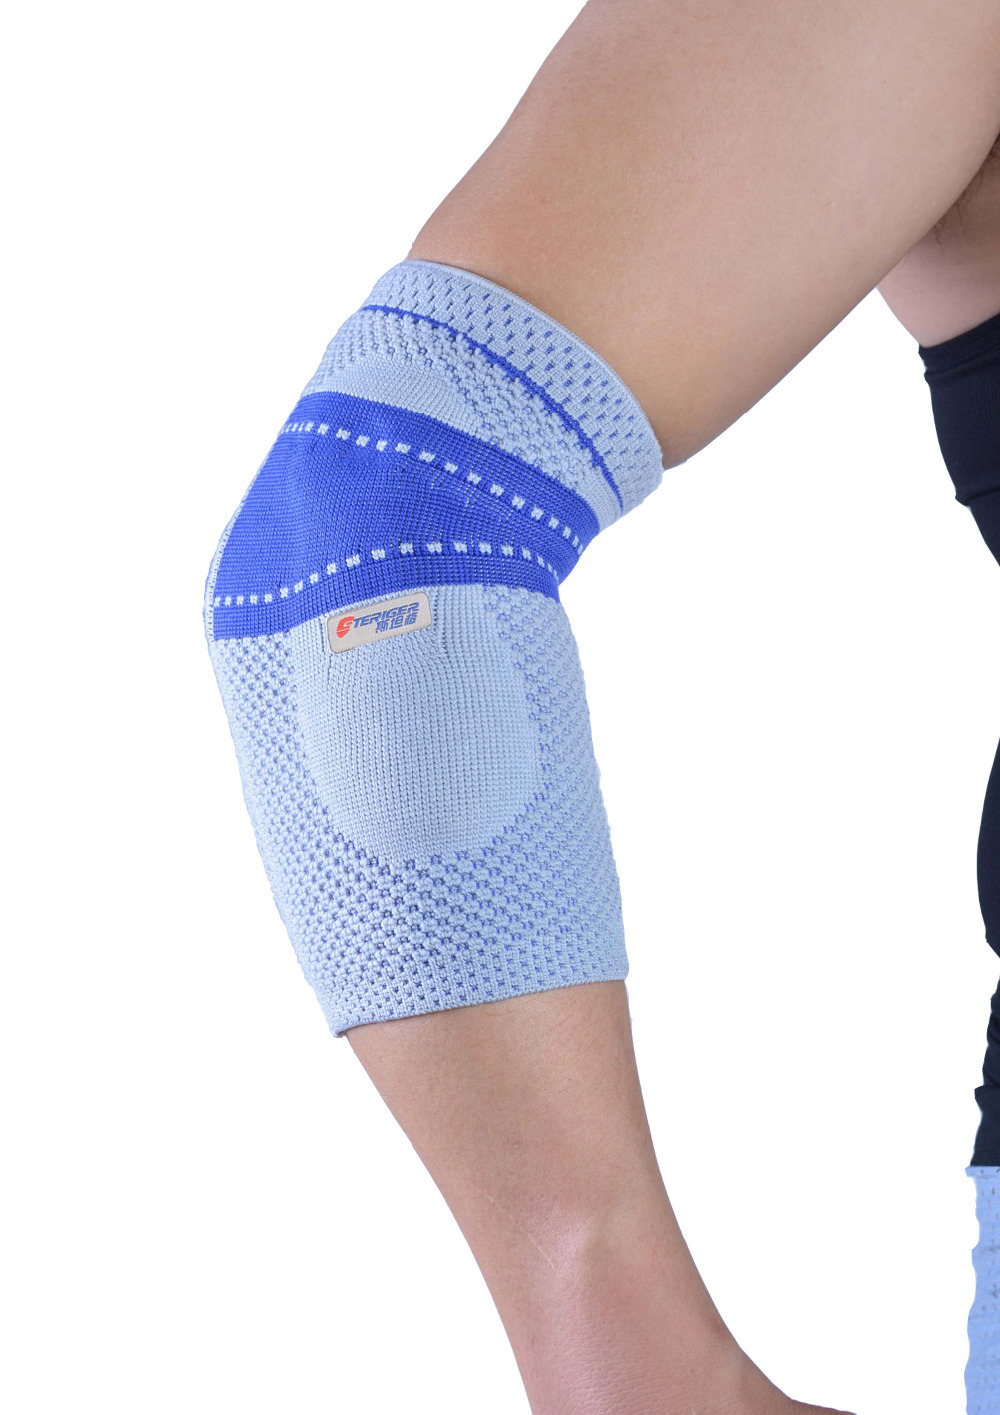 professional knitting elastic breathable volleyball elbow pads tennis elbow support arm sleeve free shipping #elbow6801(China (Mainland))